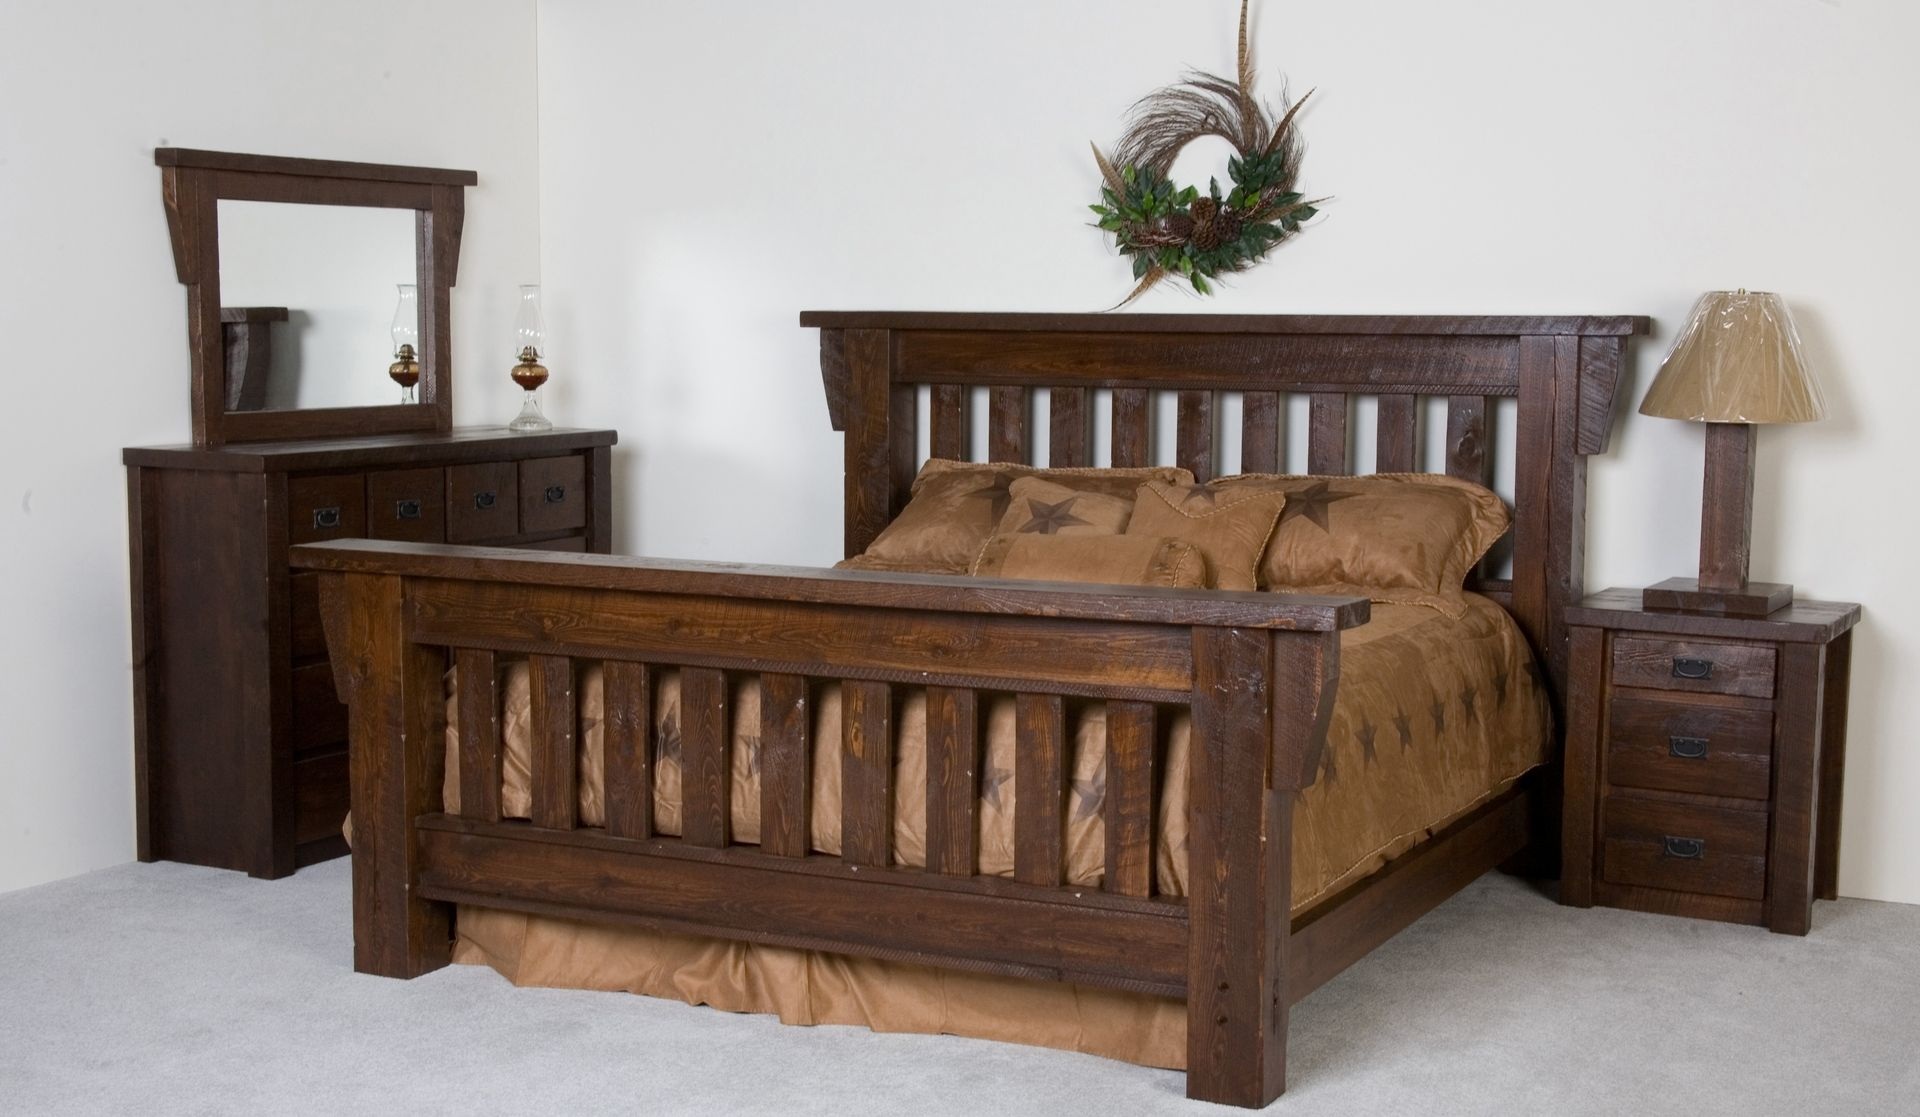 Hand Crafted Timberwood Barnwood Bed Frame By Viking Log